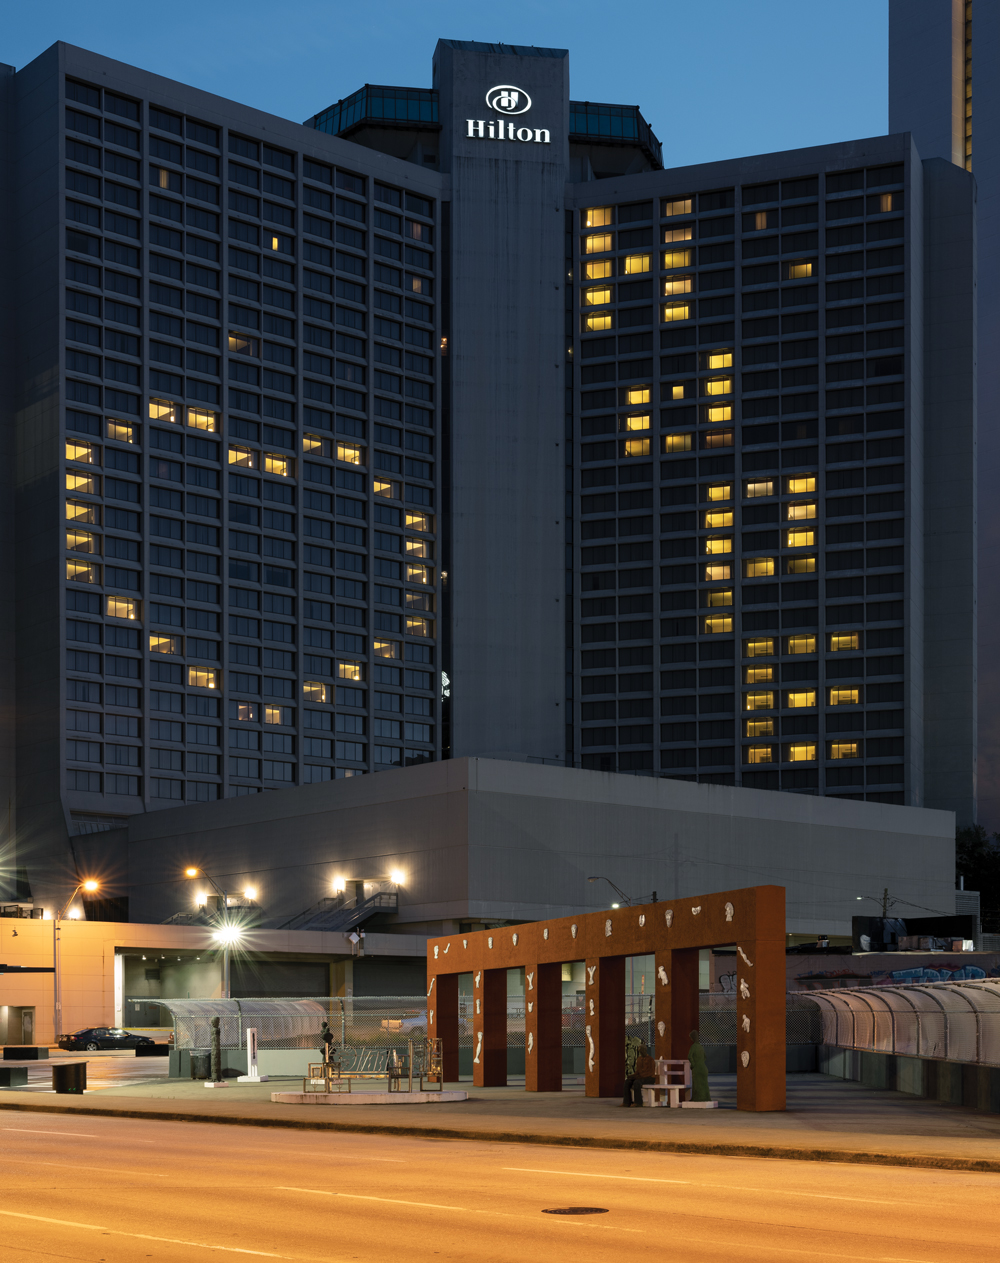 The Hilton Hotel with lights on in rooms used to spell HOPE with a heart